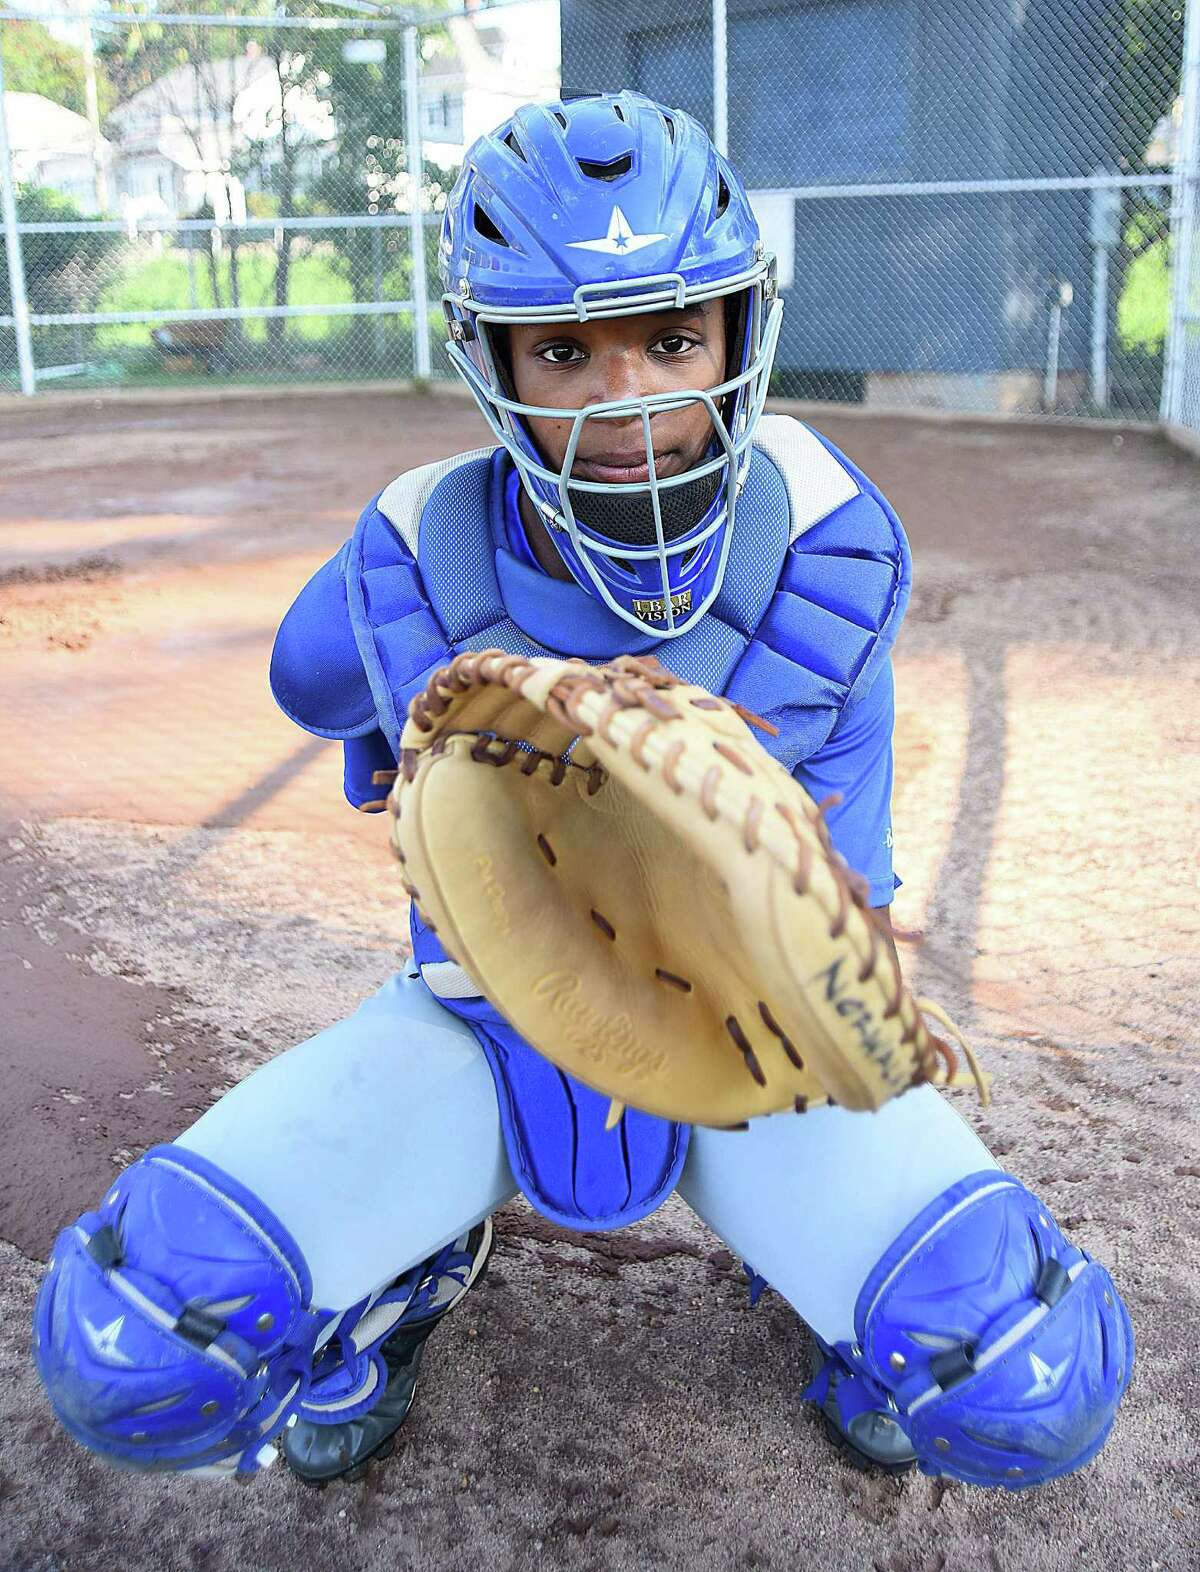 Norwalk Cal Ripken 10-year-old All-Star catcher Vicki Ward has been a key player in her team's run to the 2016 Cal Ripken World Series in Palm Spings Garden, Fla. Norwalk opens the tournament on Saturday.